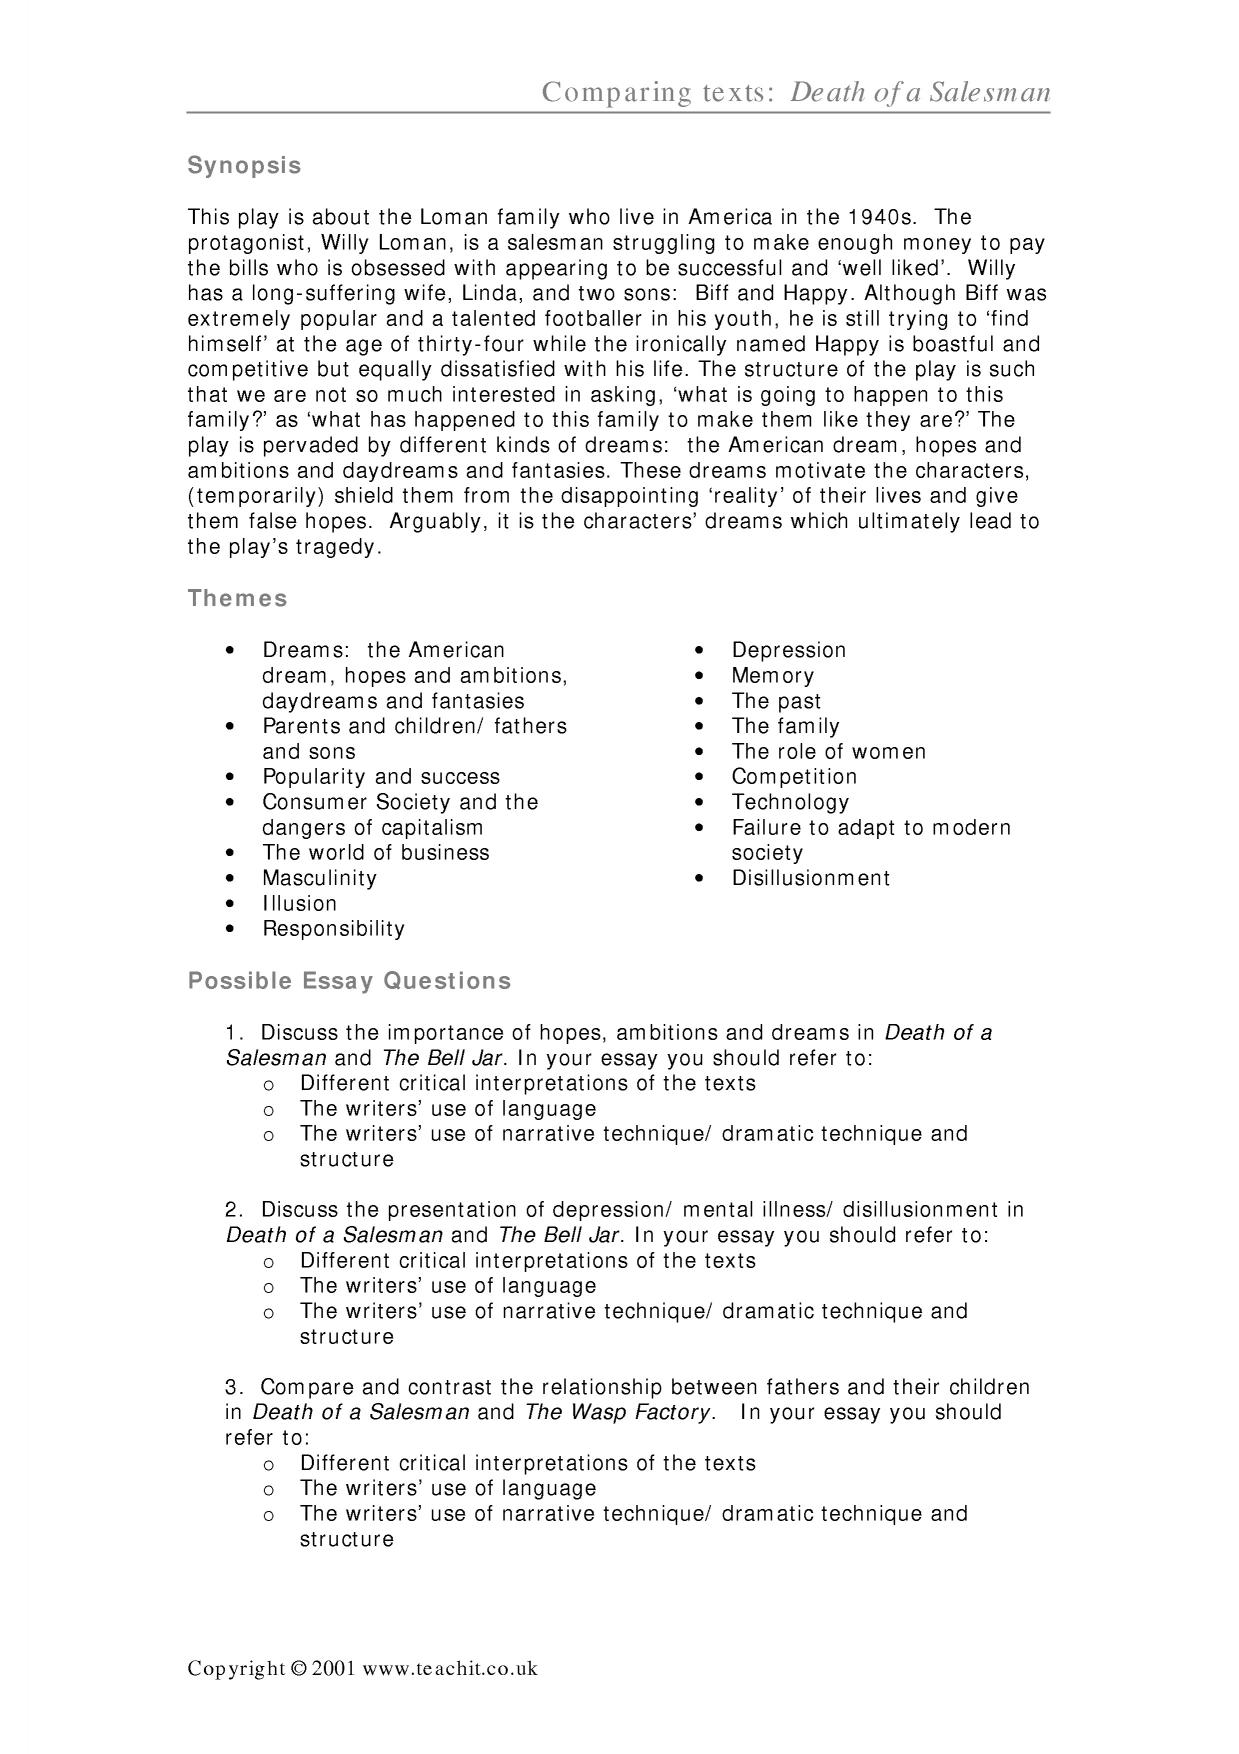 essay role of women in modern society 91 121 113 106 essay role of women in modern society